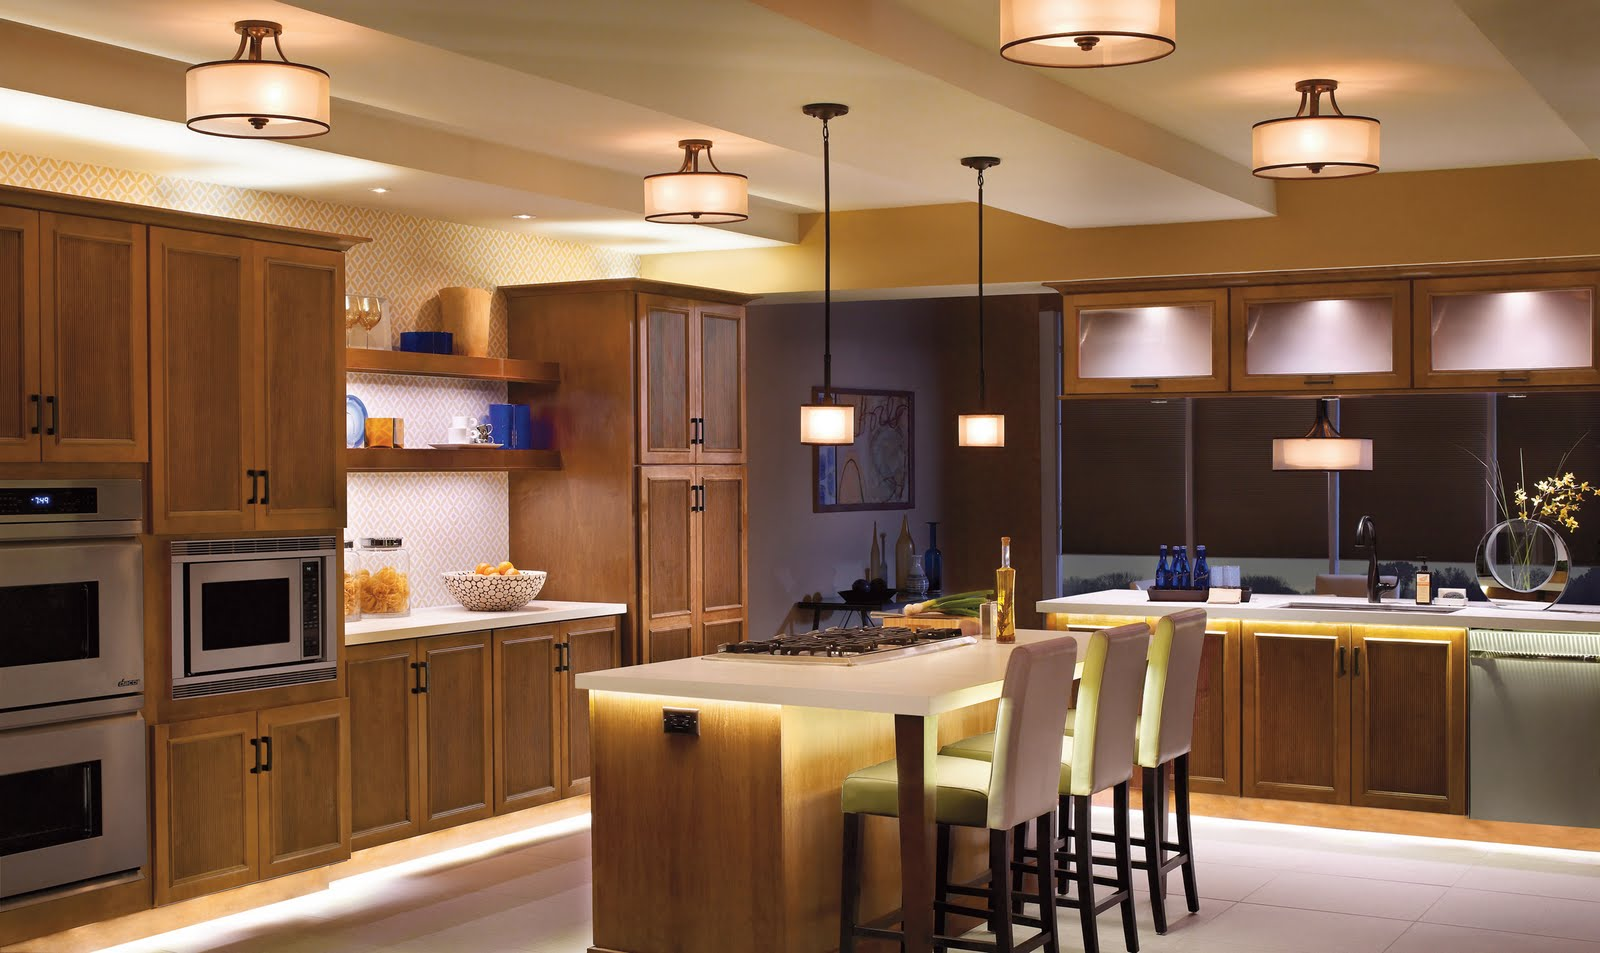 kitchen lighting fixtures tips in buying kitchen lighting Kitchen Lighting Fixtures Tips in Buying